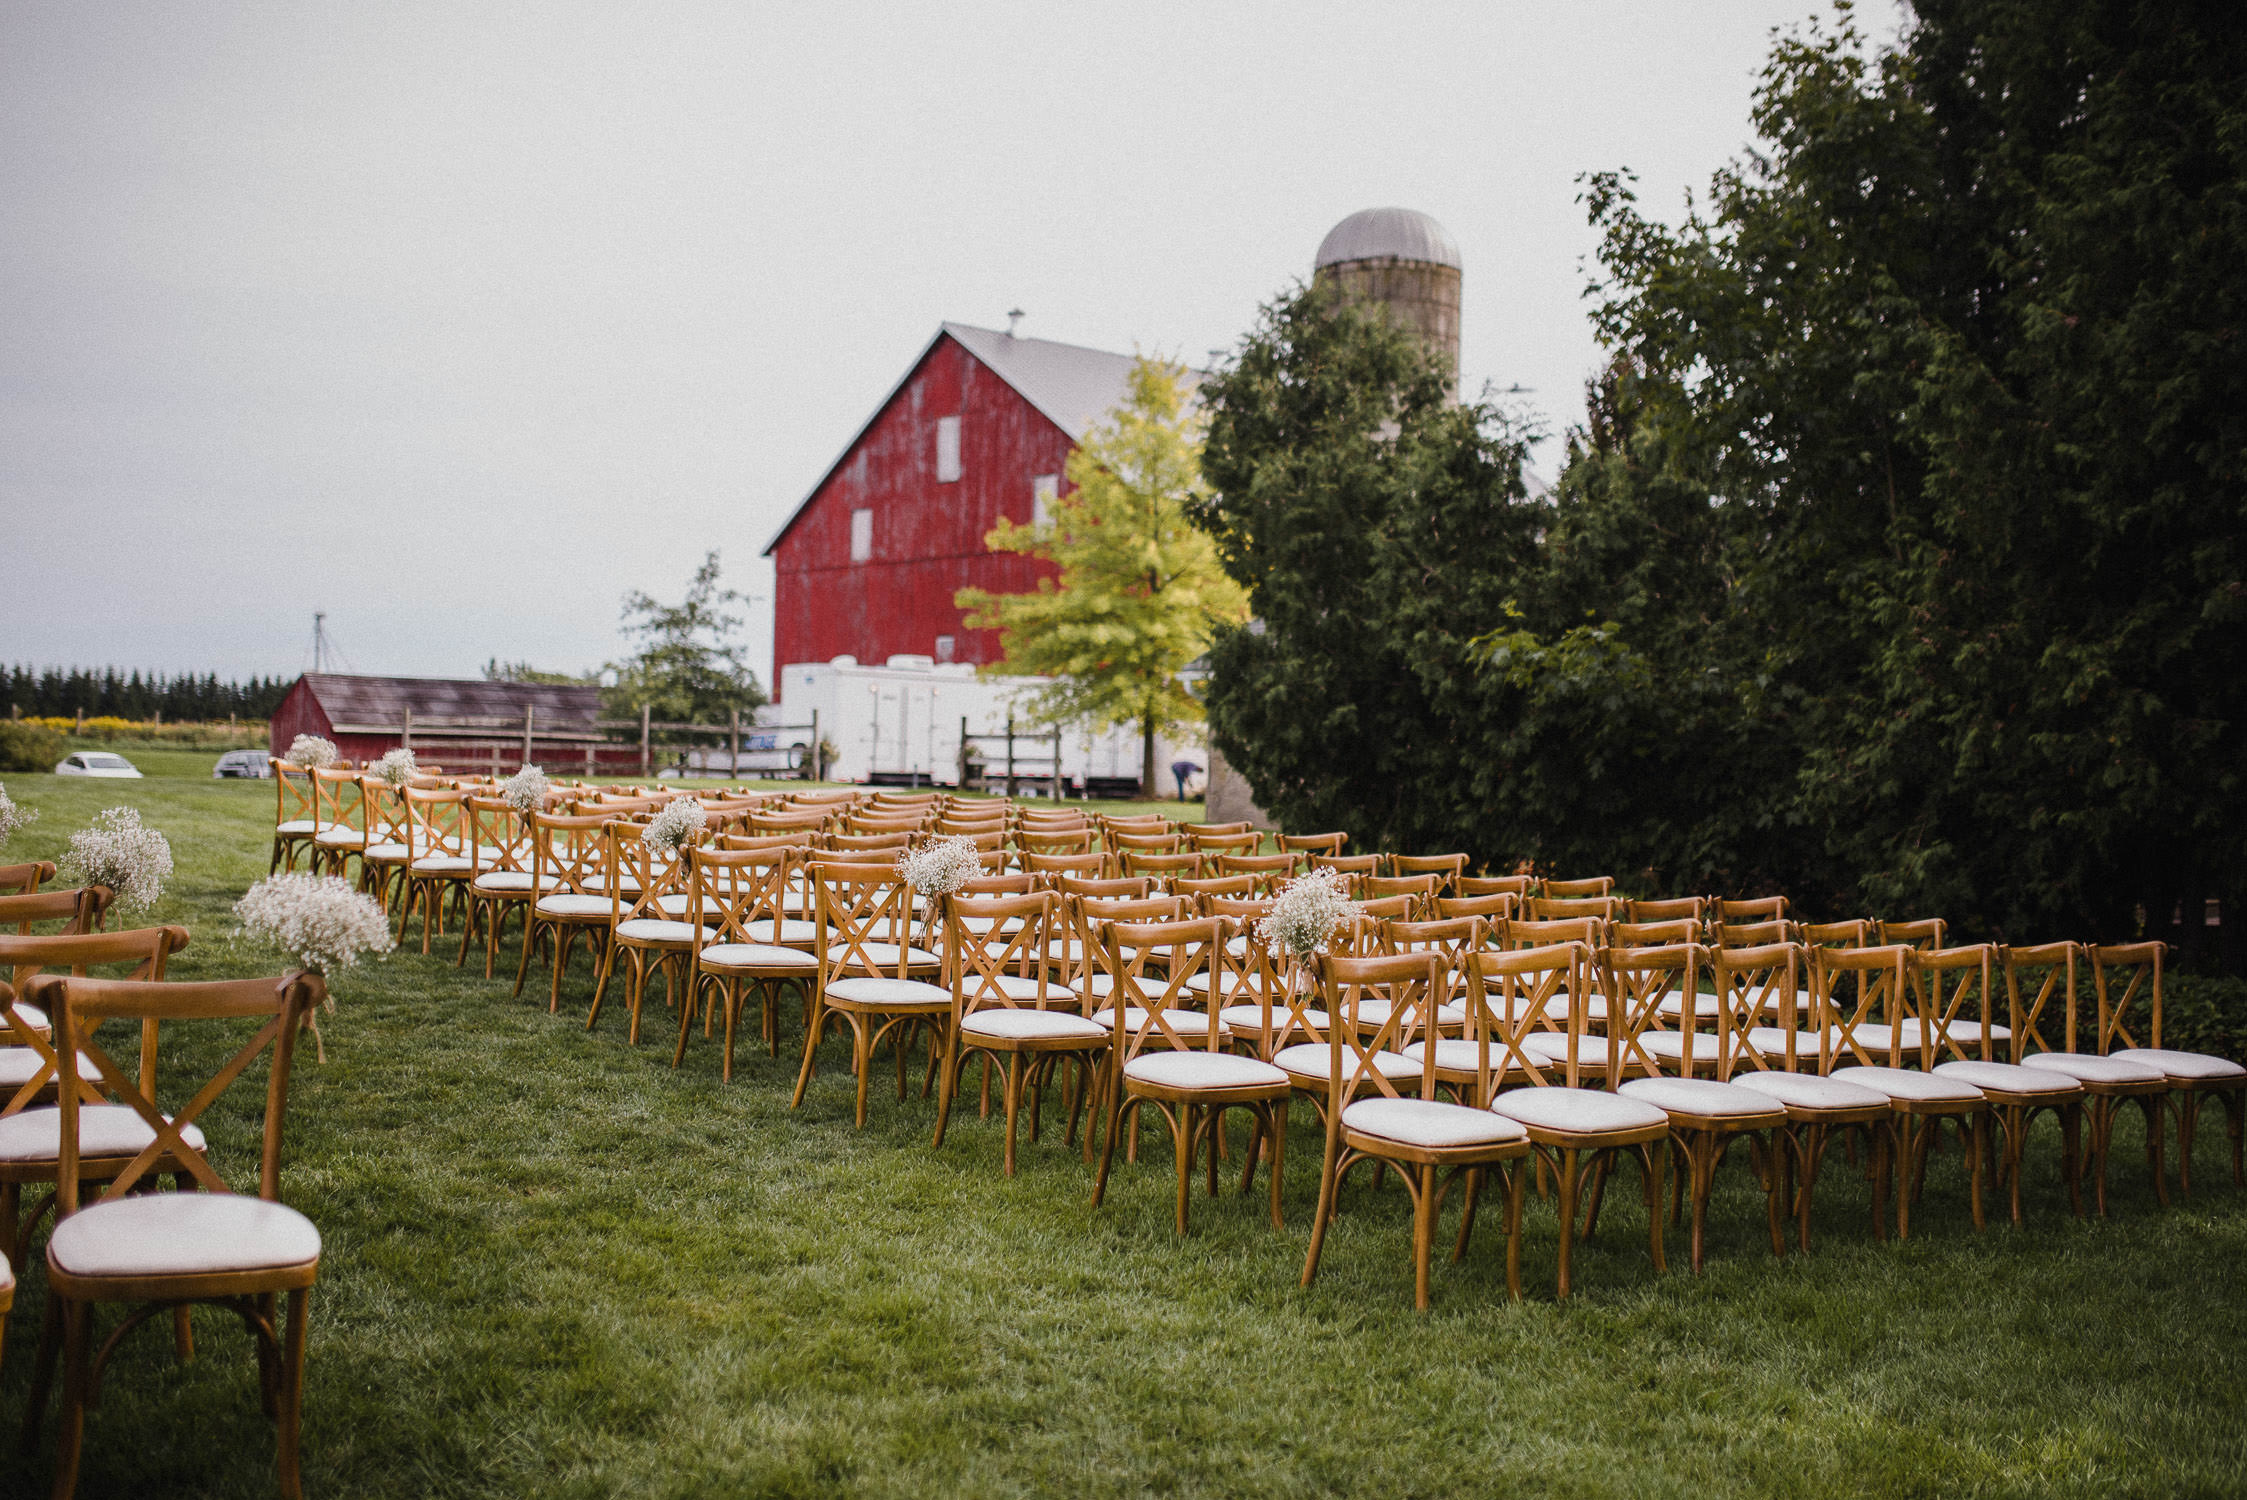 Chairs line the green grass behind the red barn before the wedding ceremony at Cambium Farm.